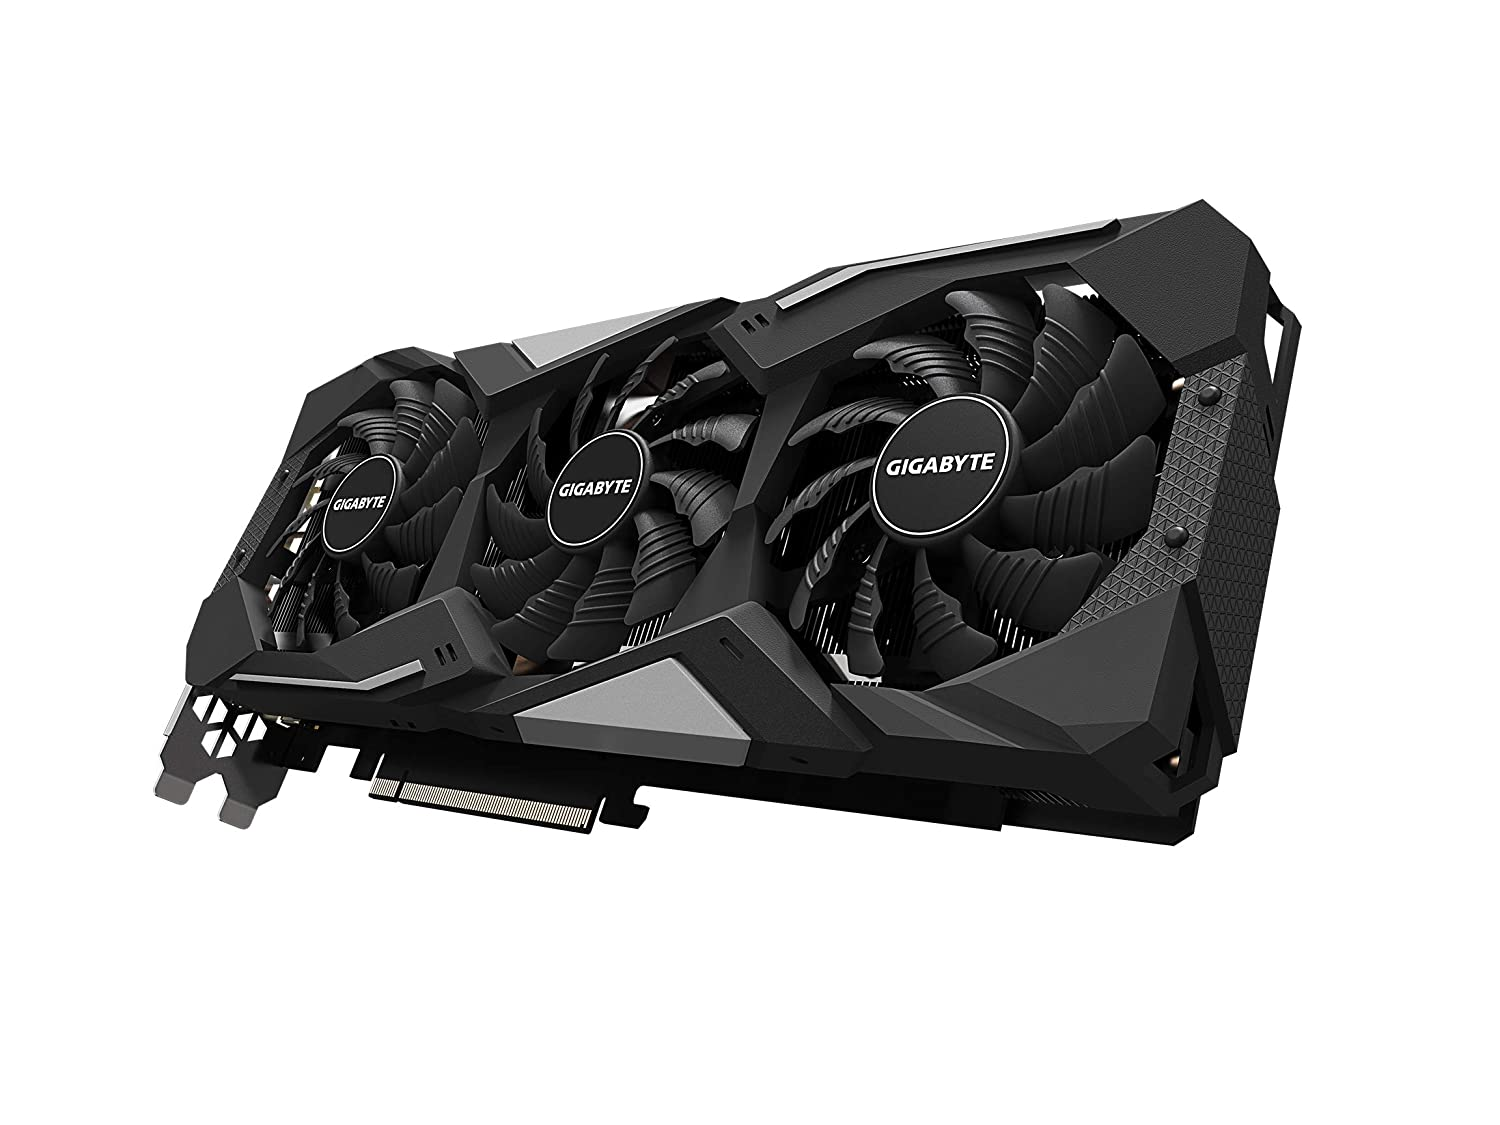 rx 5700 graphics card